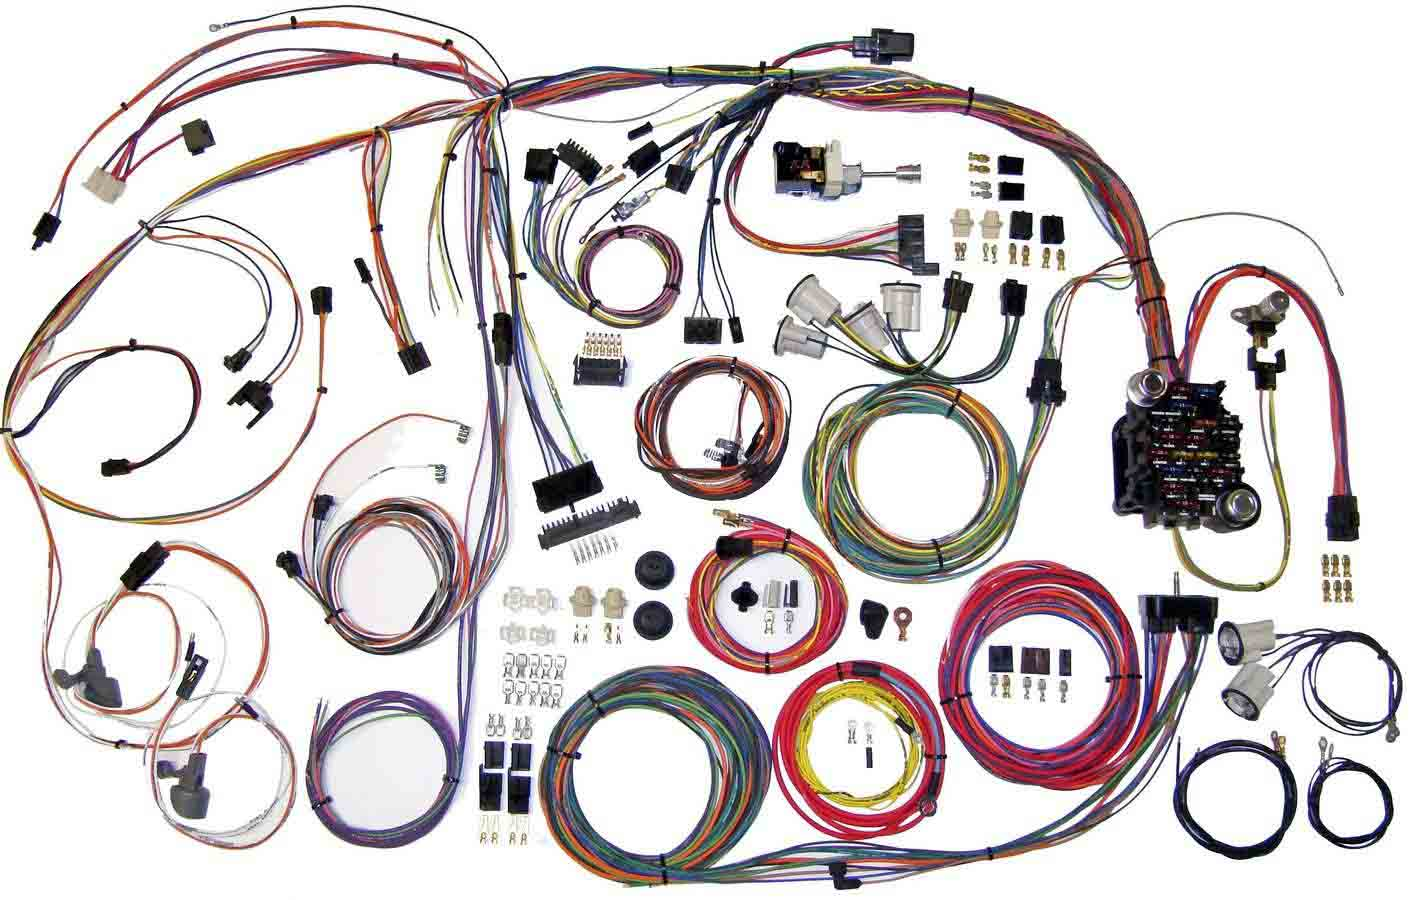 Grand Prix Auto Chevy Engine Test Stand Wiring Diagram 70 72 Chevelle Harness